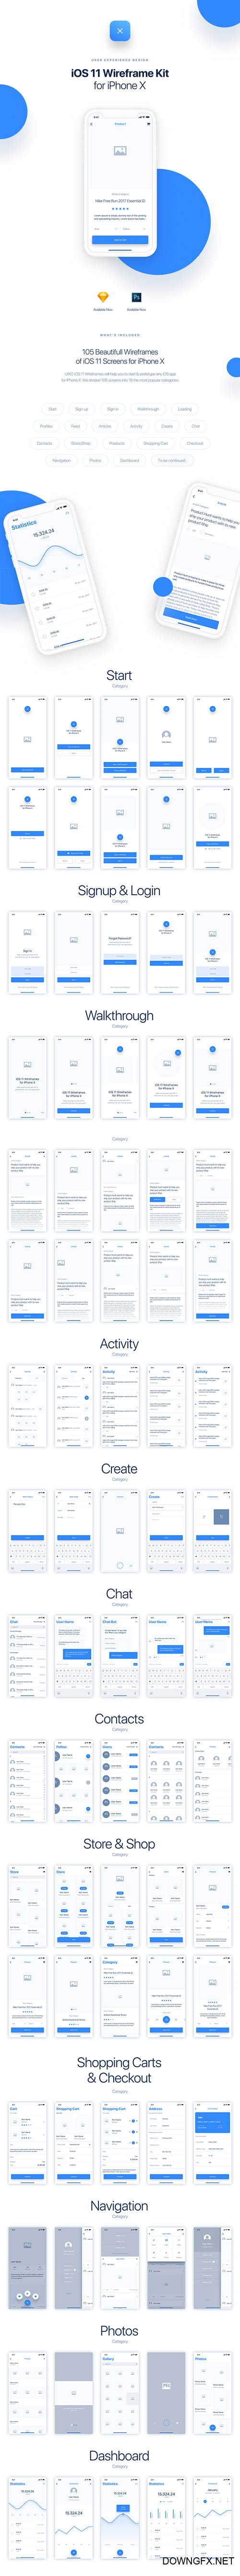 UIXO iOS 11 Wireframe Kit - 105 Beautifull Wireframes of iOS 11 Screens for iPhone X